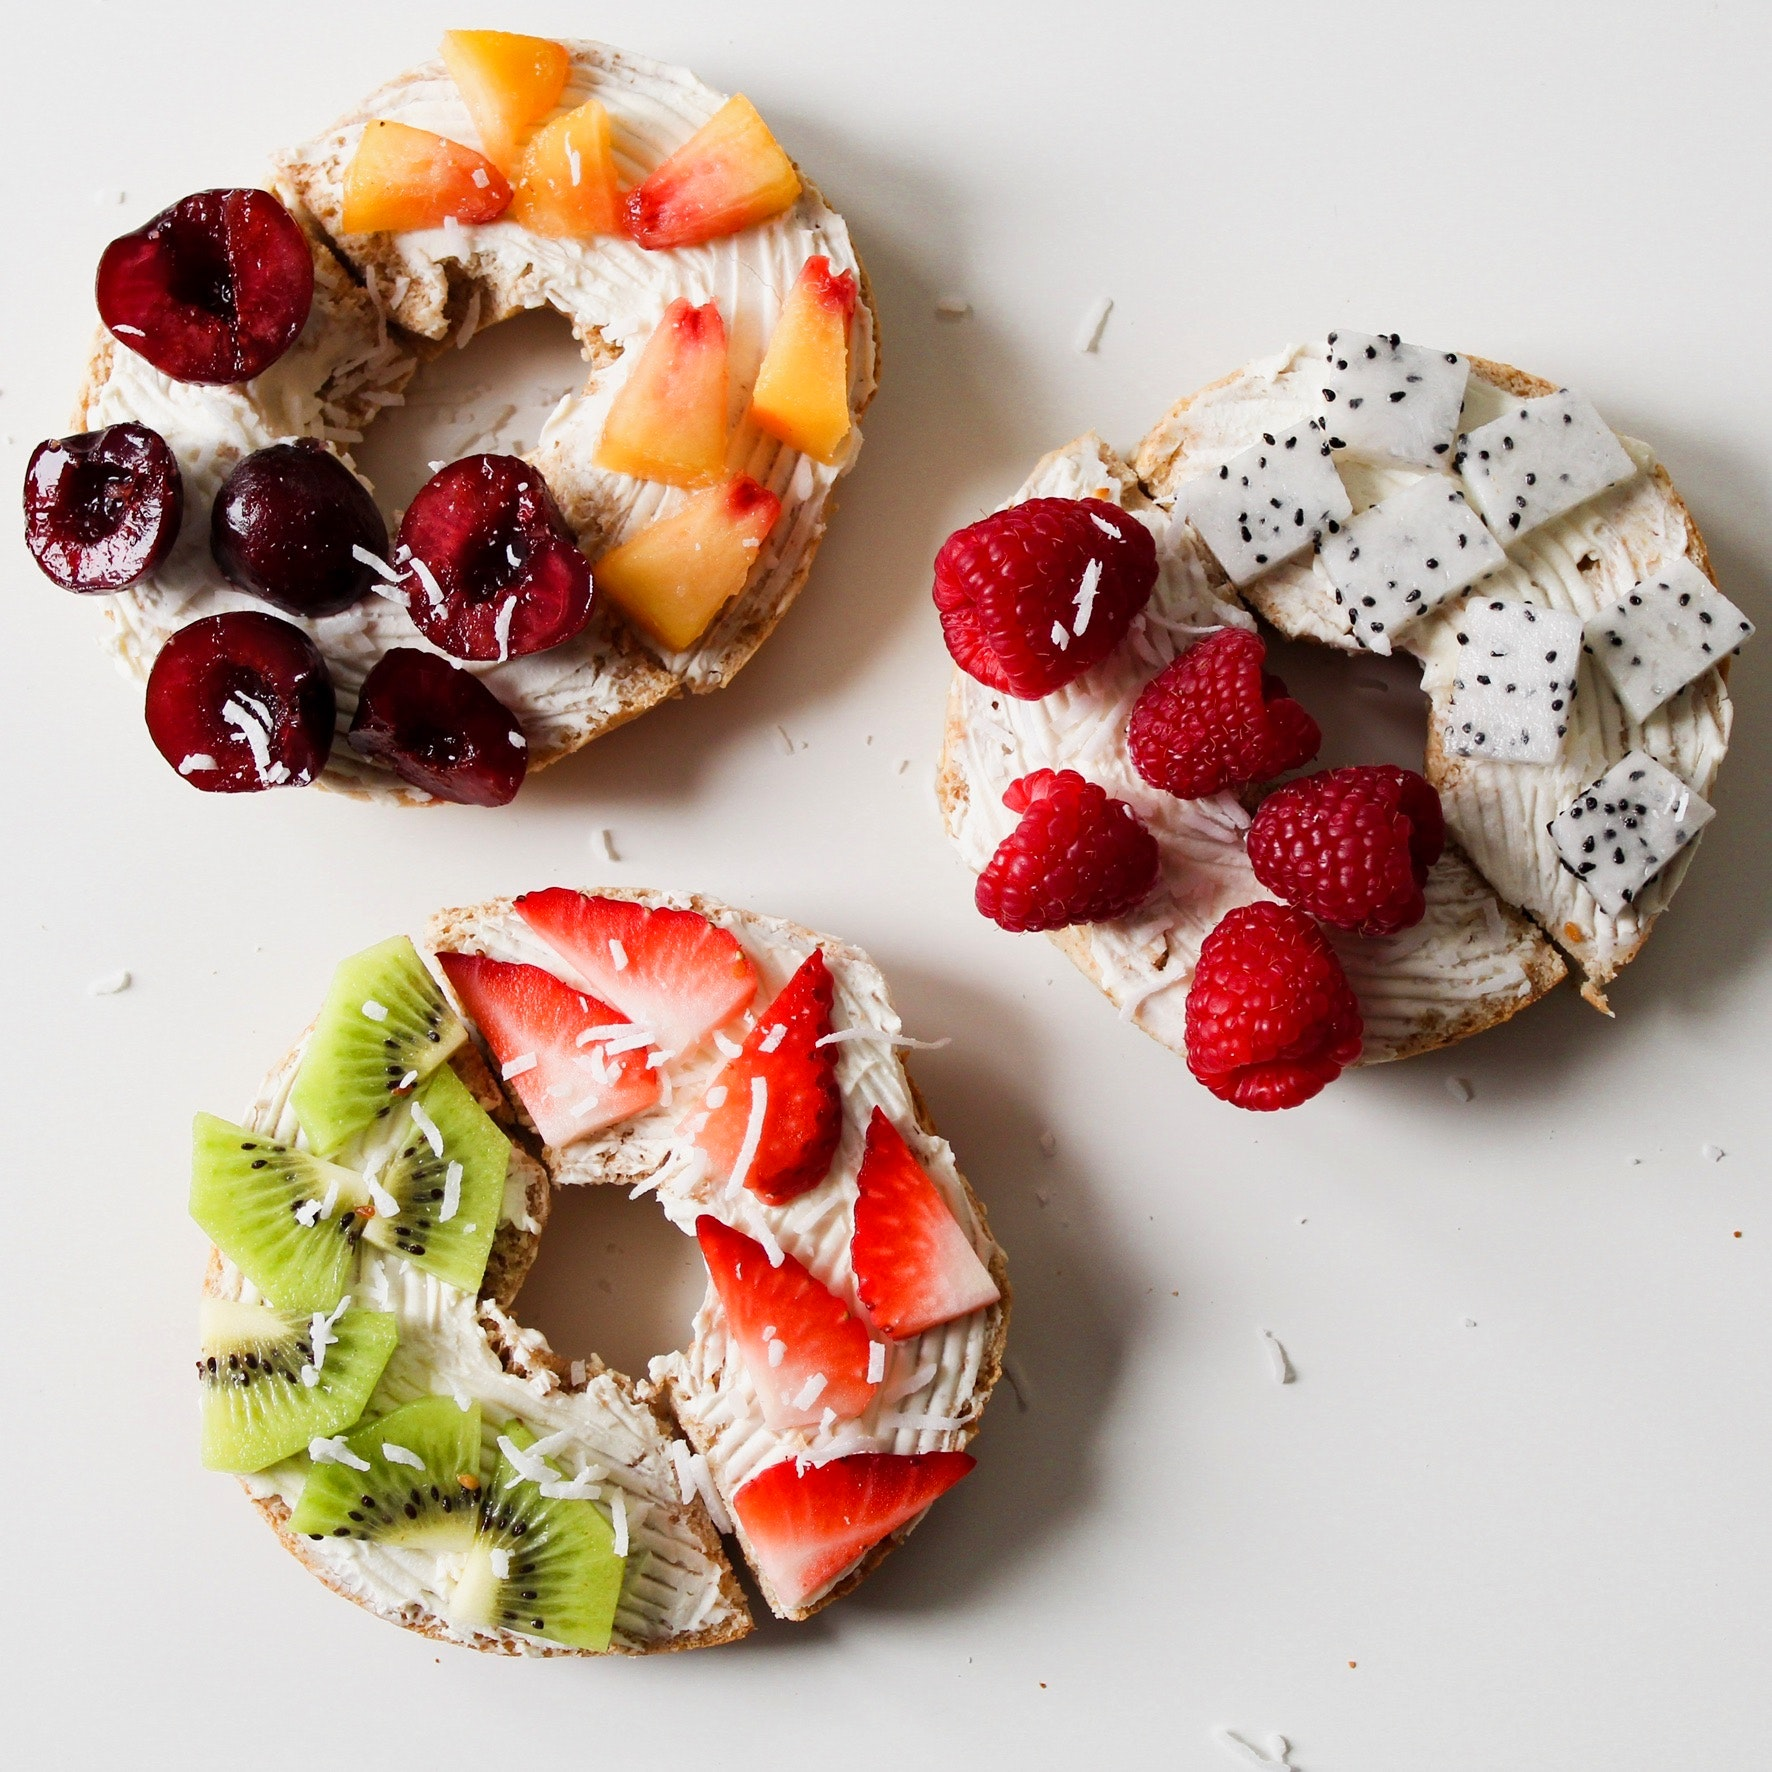 Round Fruit Donuts, Mixed fruits, Raspberries, Healthy food, Healthy diet, HQ Photo